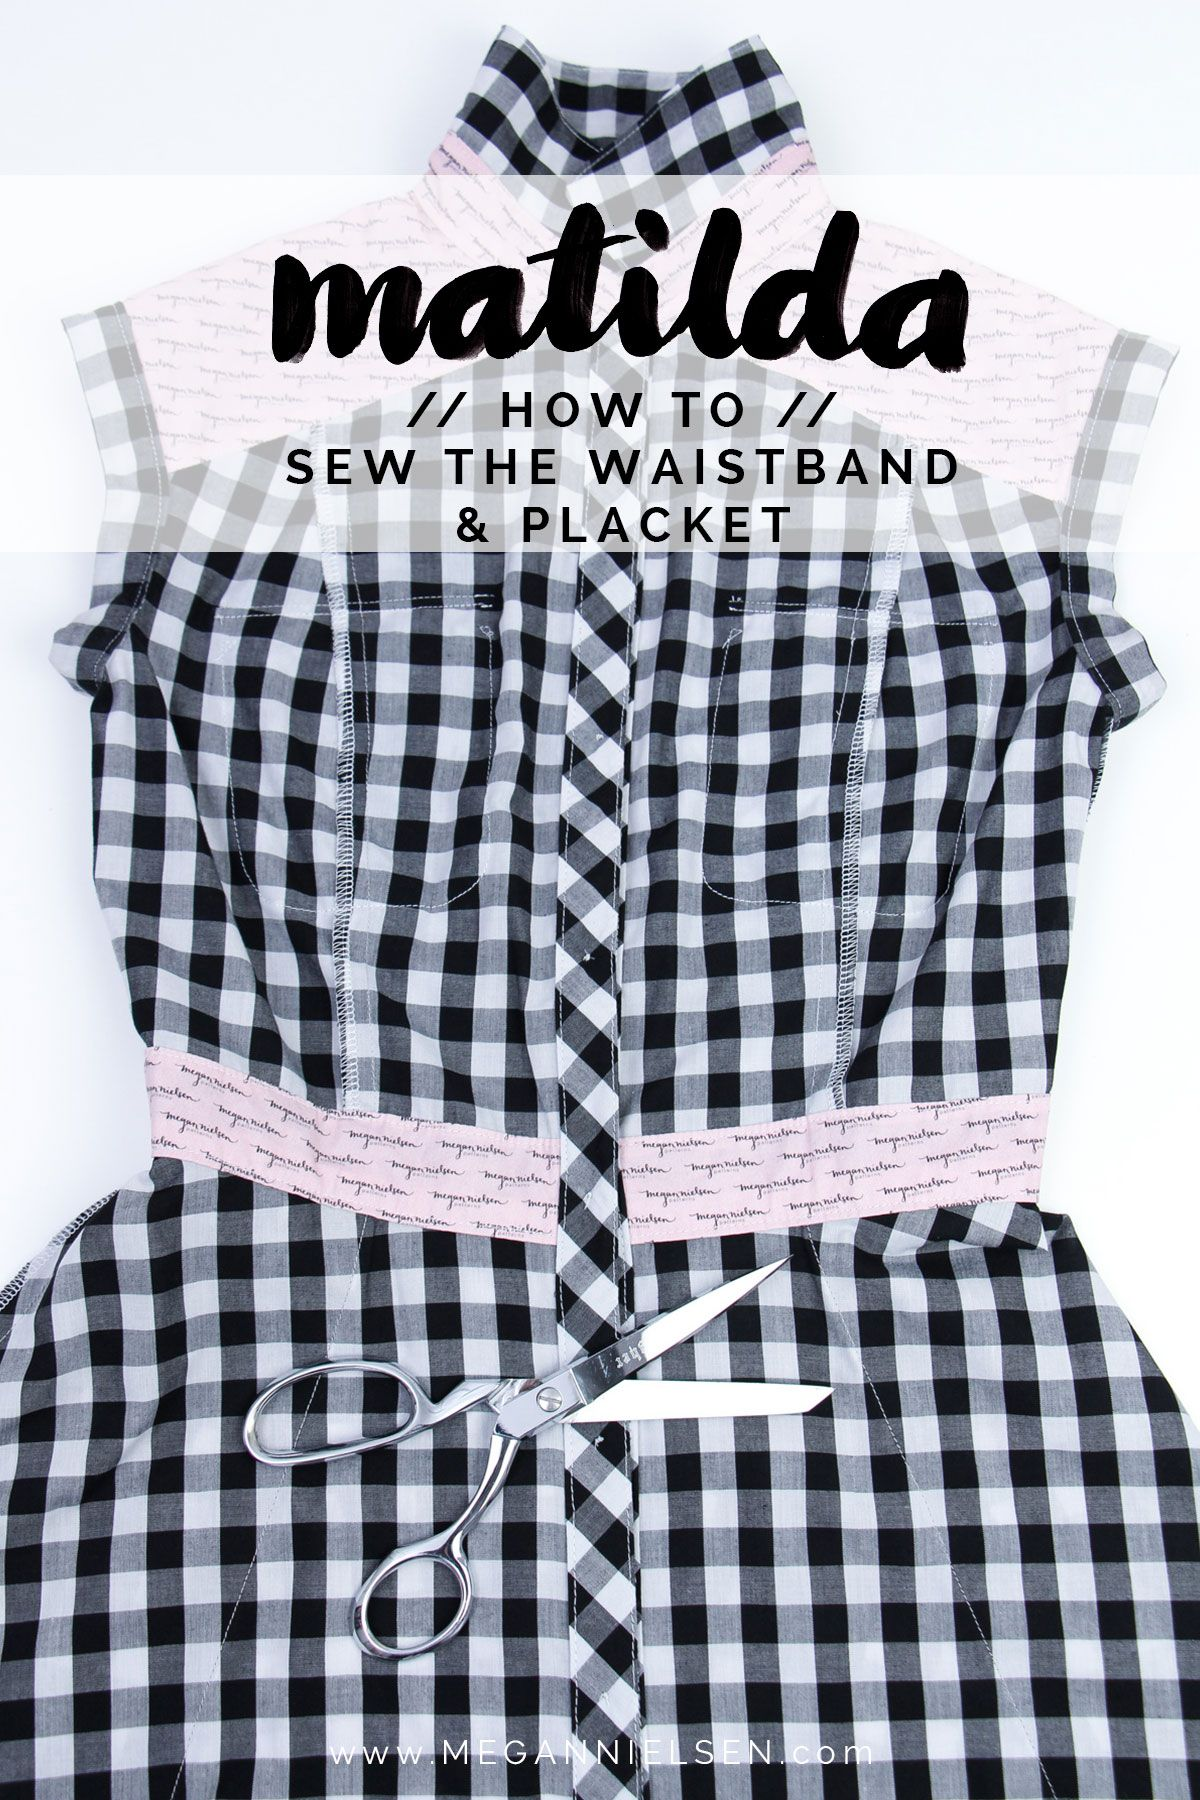 How to sew the waistband and placket a matilda dress tutorial how to sew the waistband and placket a matilda dress tutorial jeuxipadfo Images